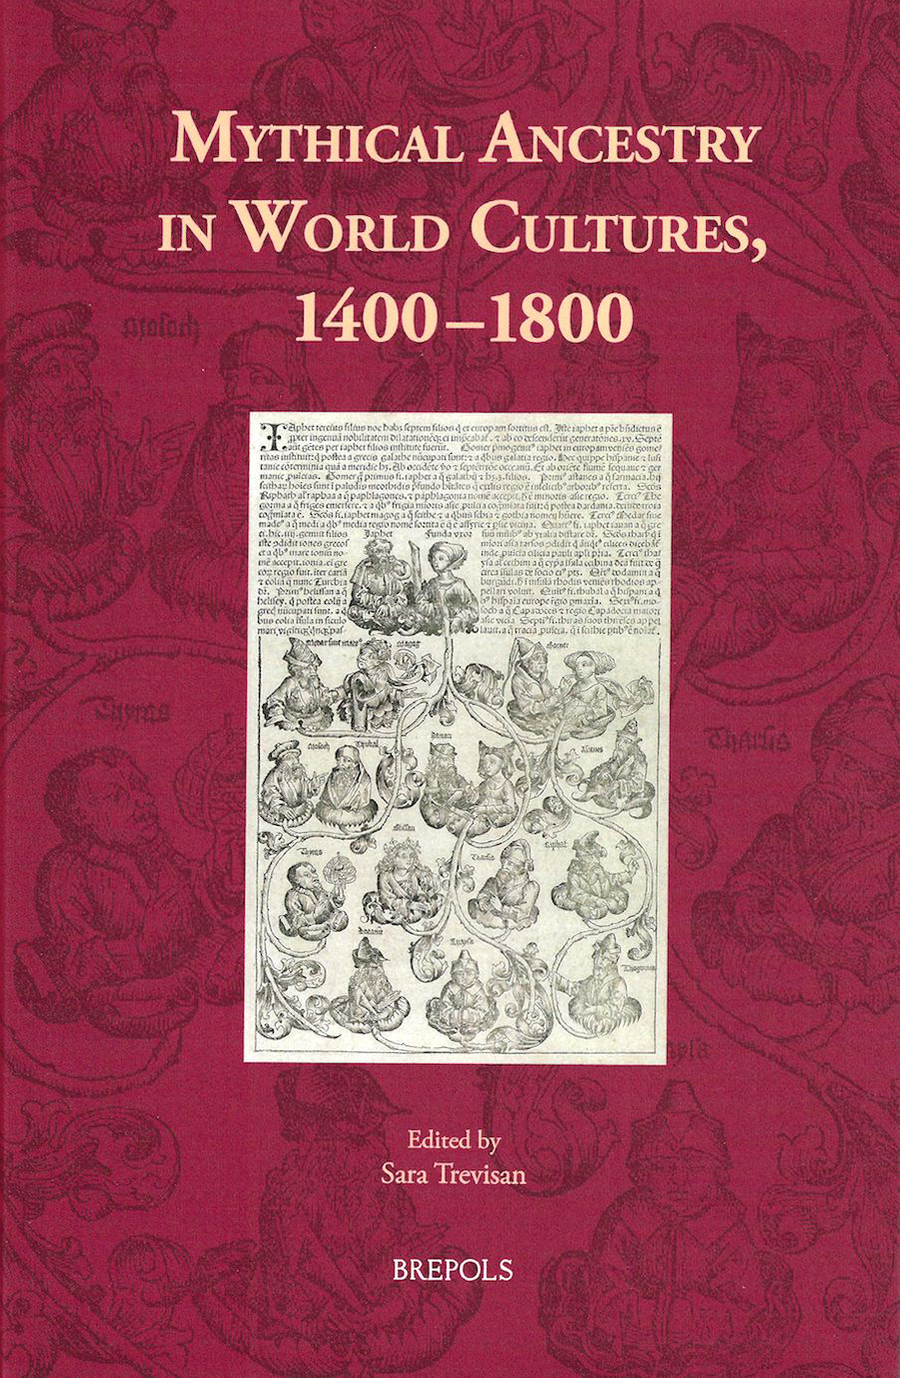 Image of Book Cover for